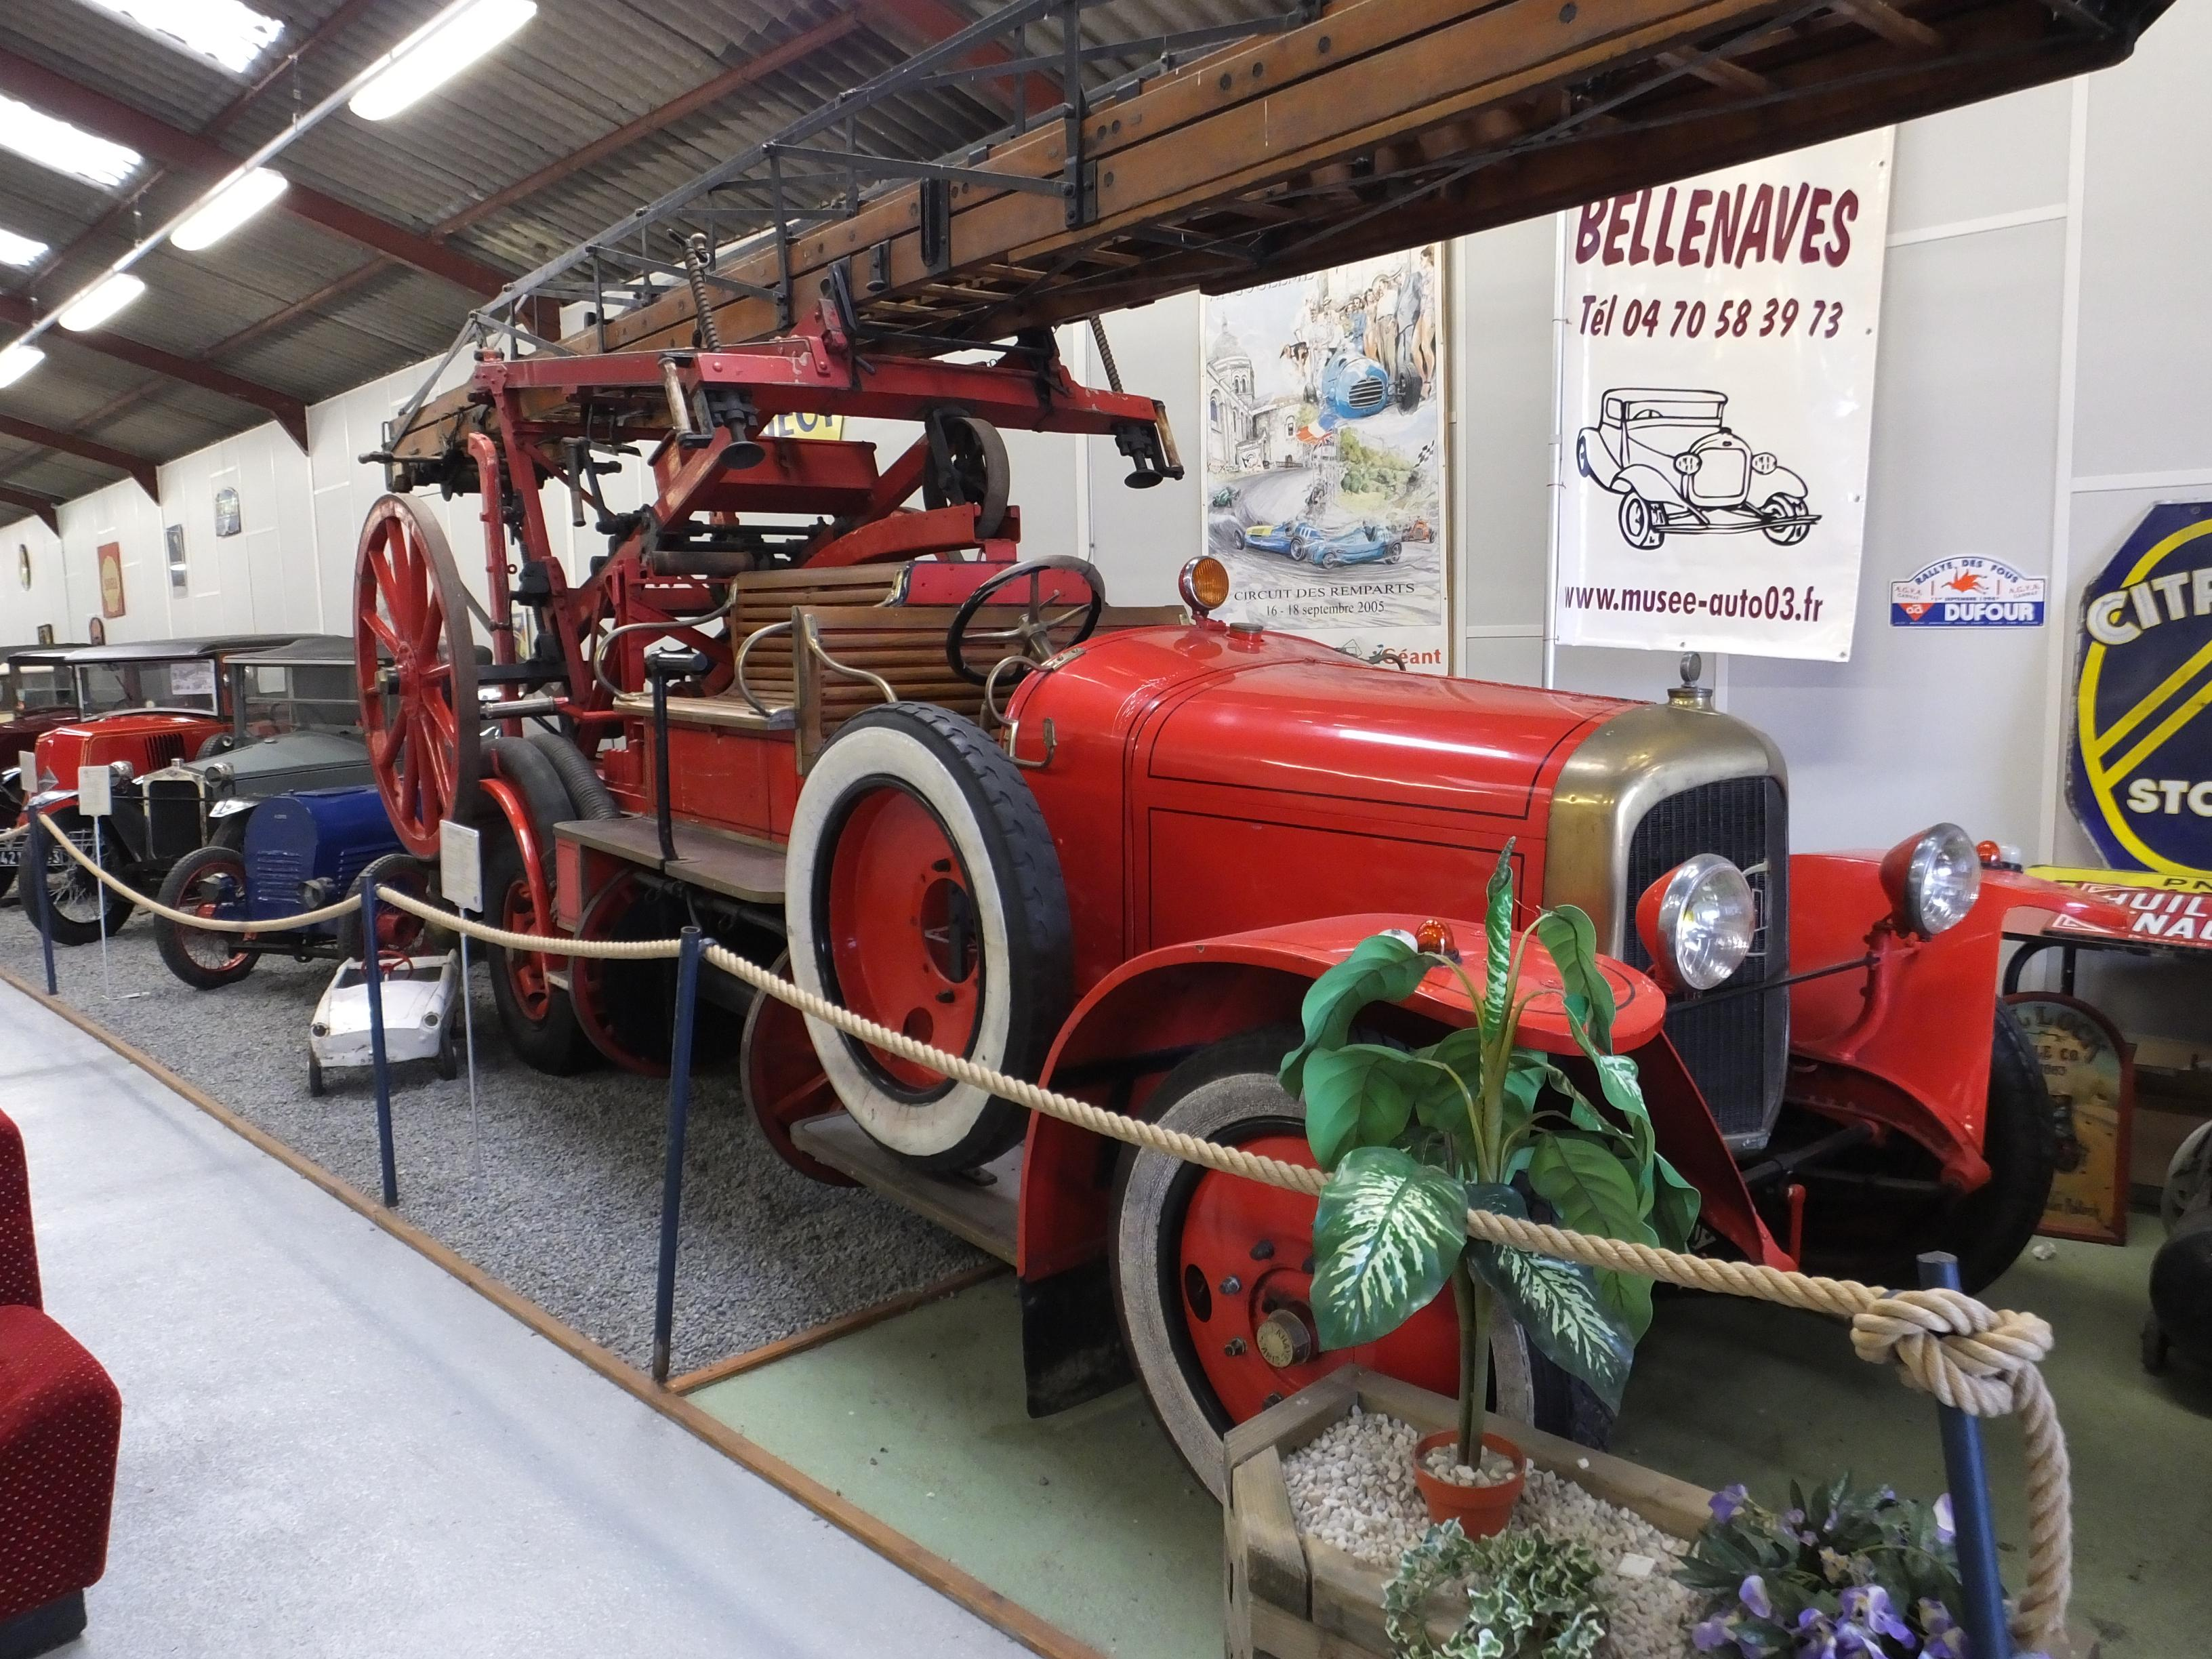 850-musee_automobiles_bellenaves-allier.jpg